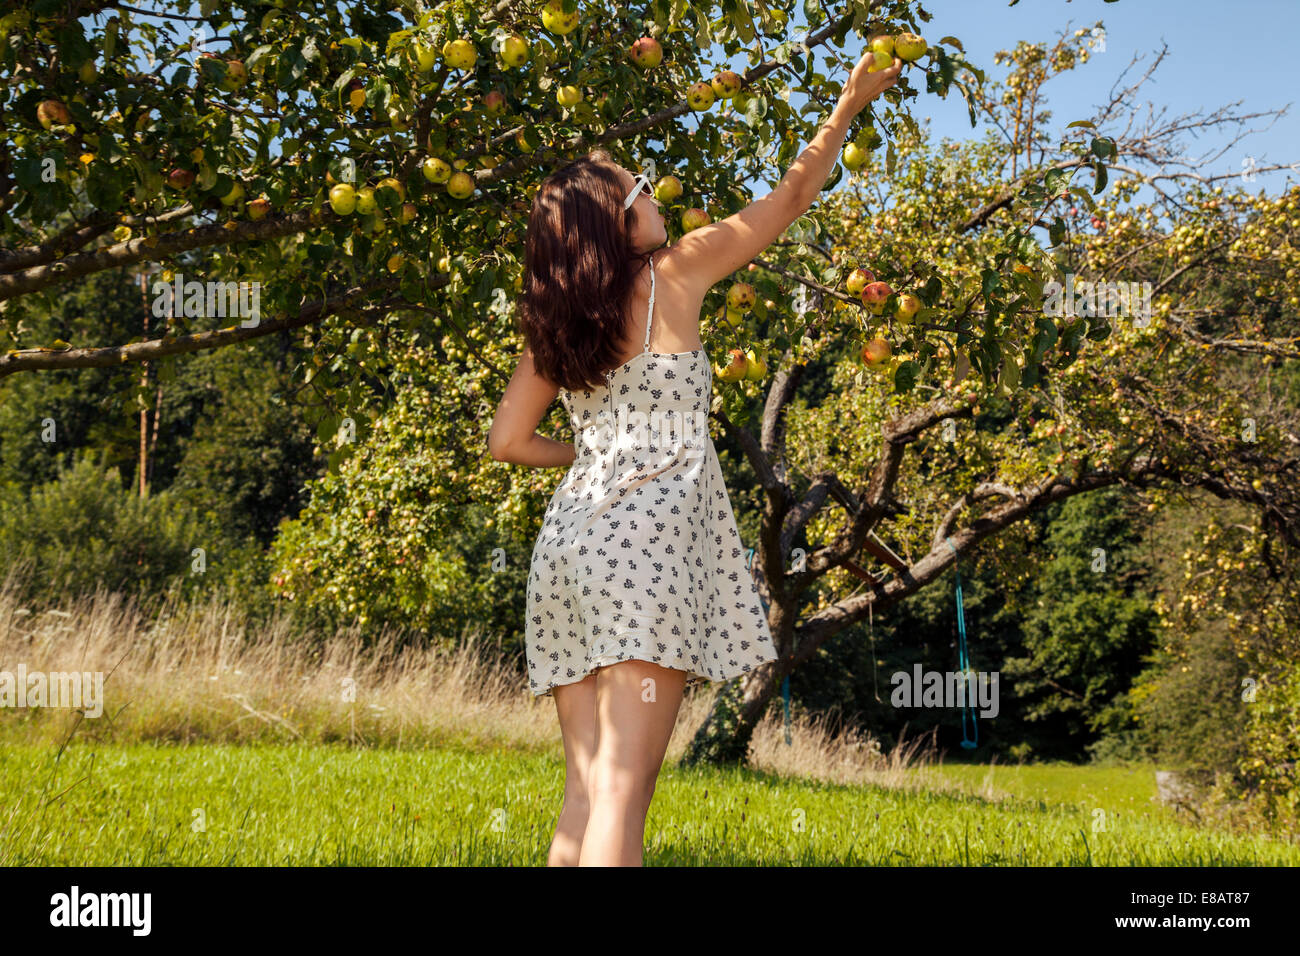 Young woman picking apple form tree - Stock Image